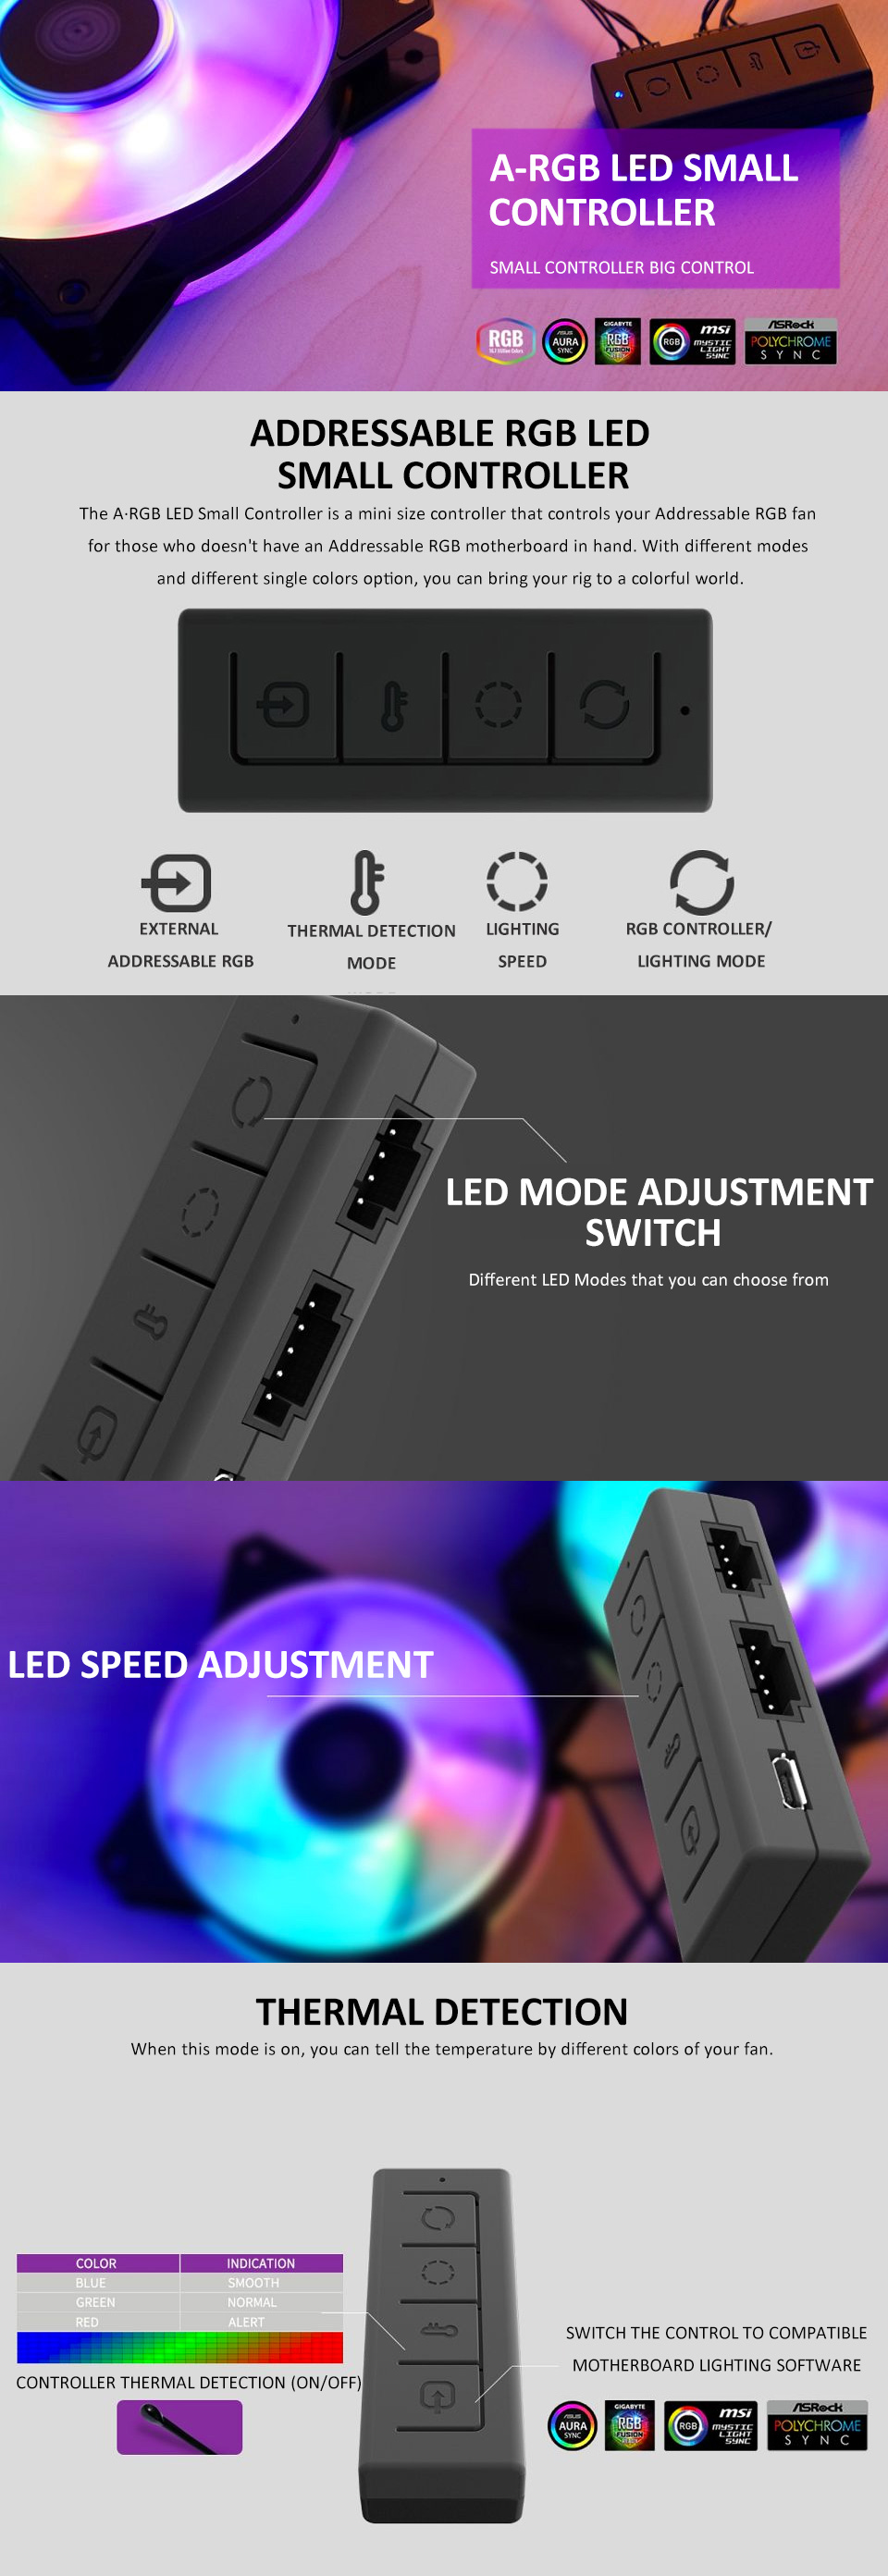 Cooler Master ARGB LED Small Controller features